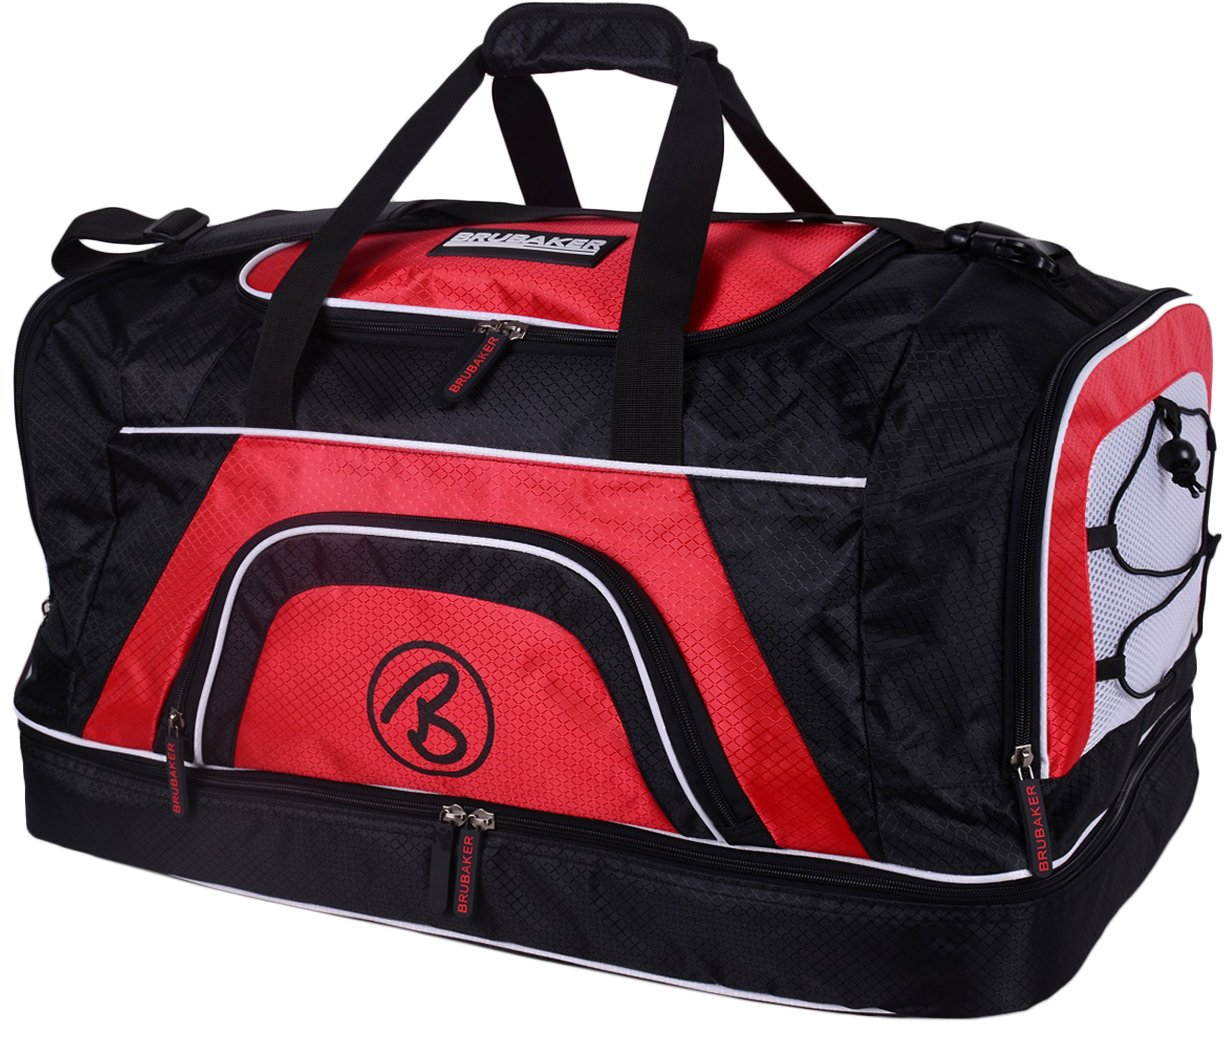 Brubaker 'Big Base' XXL Sports Bag 90 Litres or 'Medium Base' 52 Litres with + Shoe Compartment + Large Wet Compartment at the Bottom